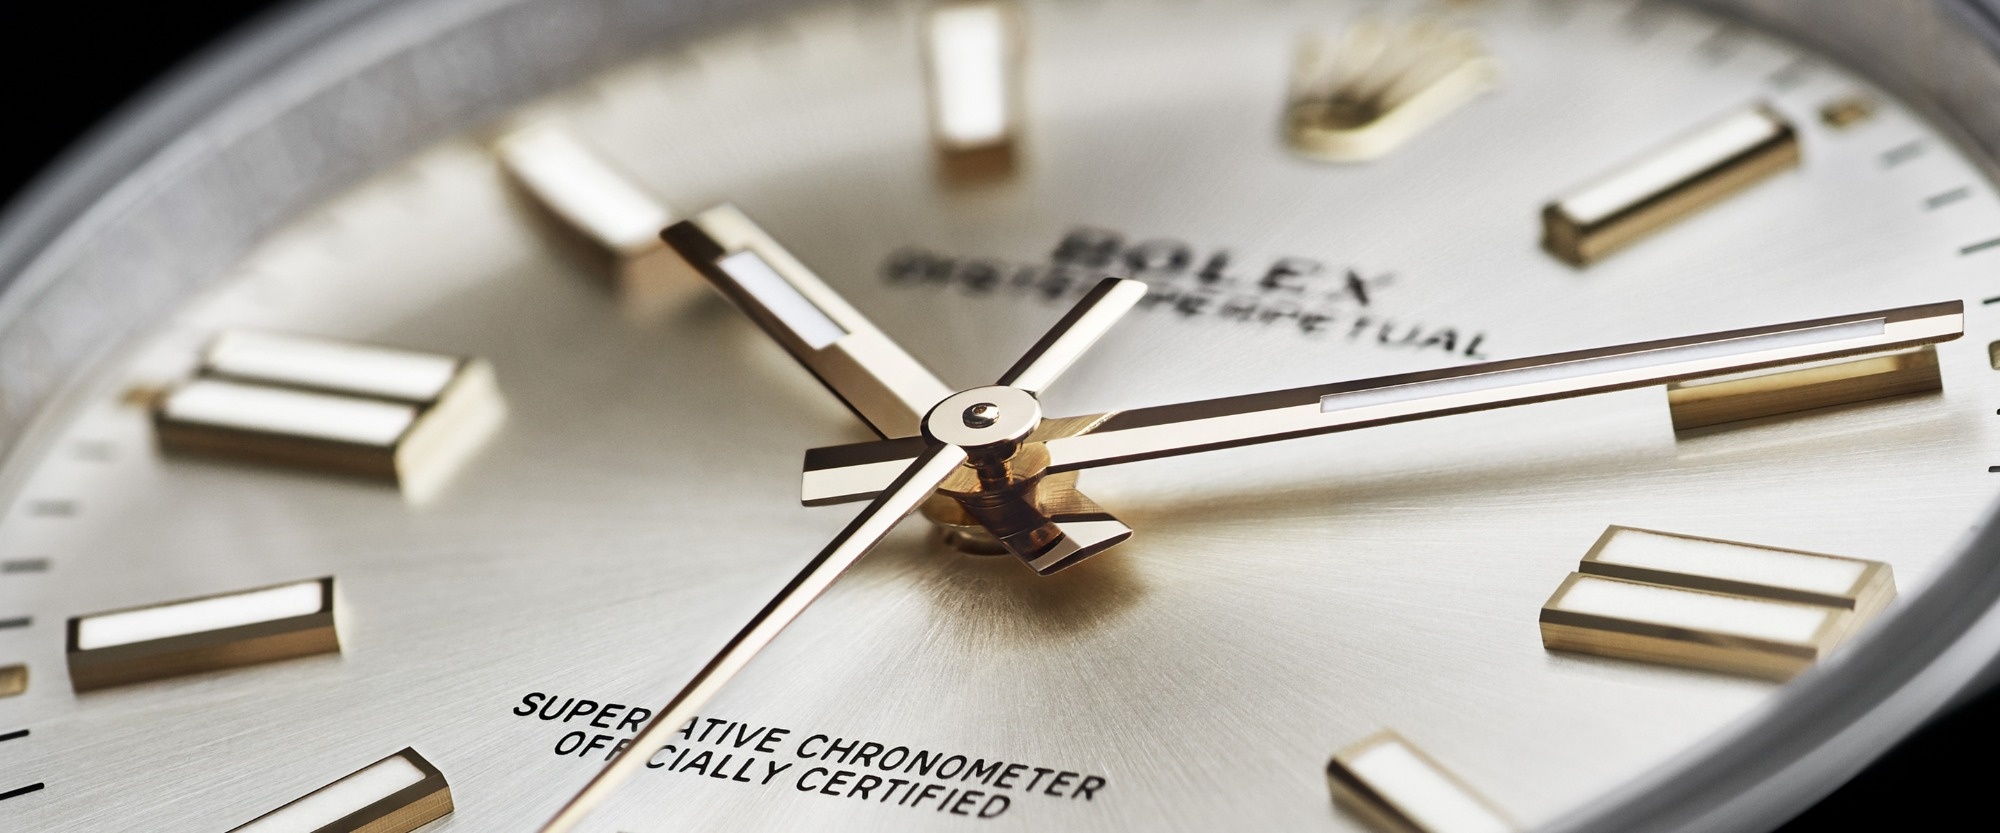 new_2020_watches_oyster_perpetual_41_beauty_shot